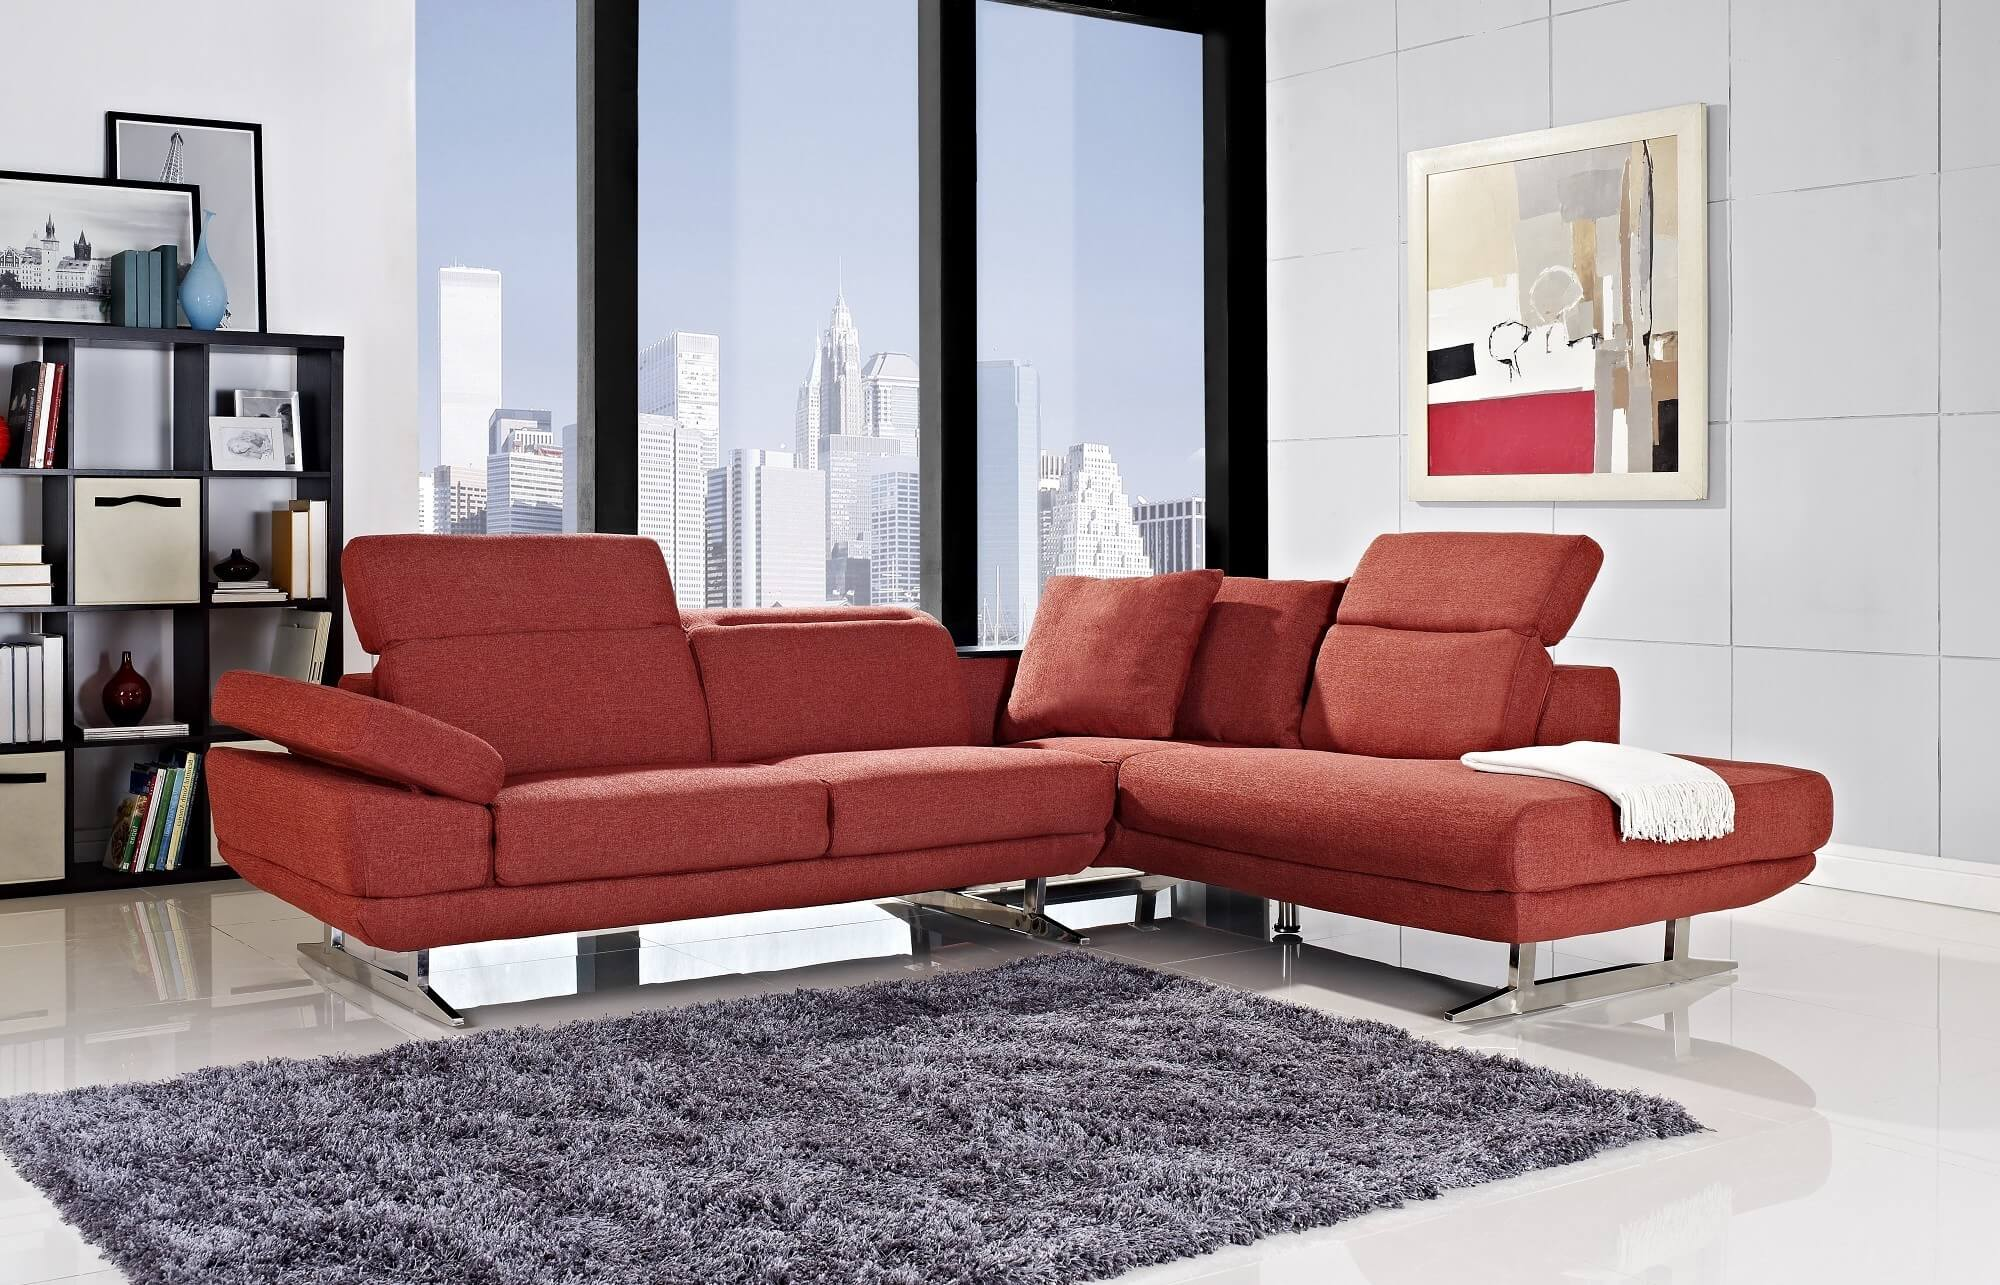 This modern red sectional includes adjustable headrests, an adjustable armrest and is made with a solid wood frame, chrome legs and fabric upholstery.